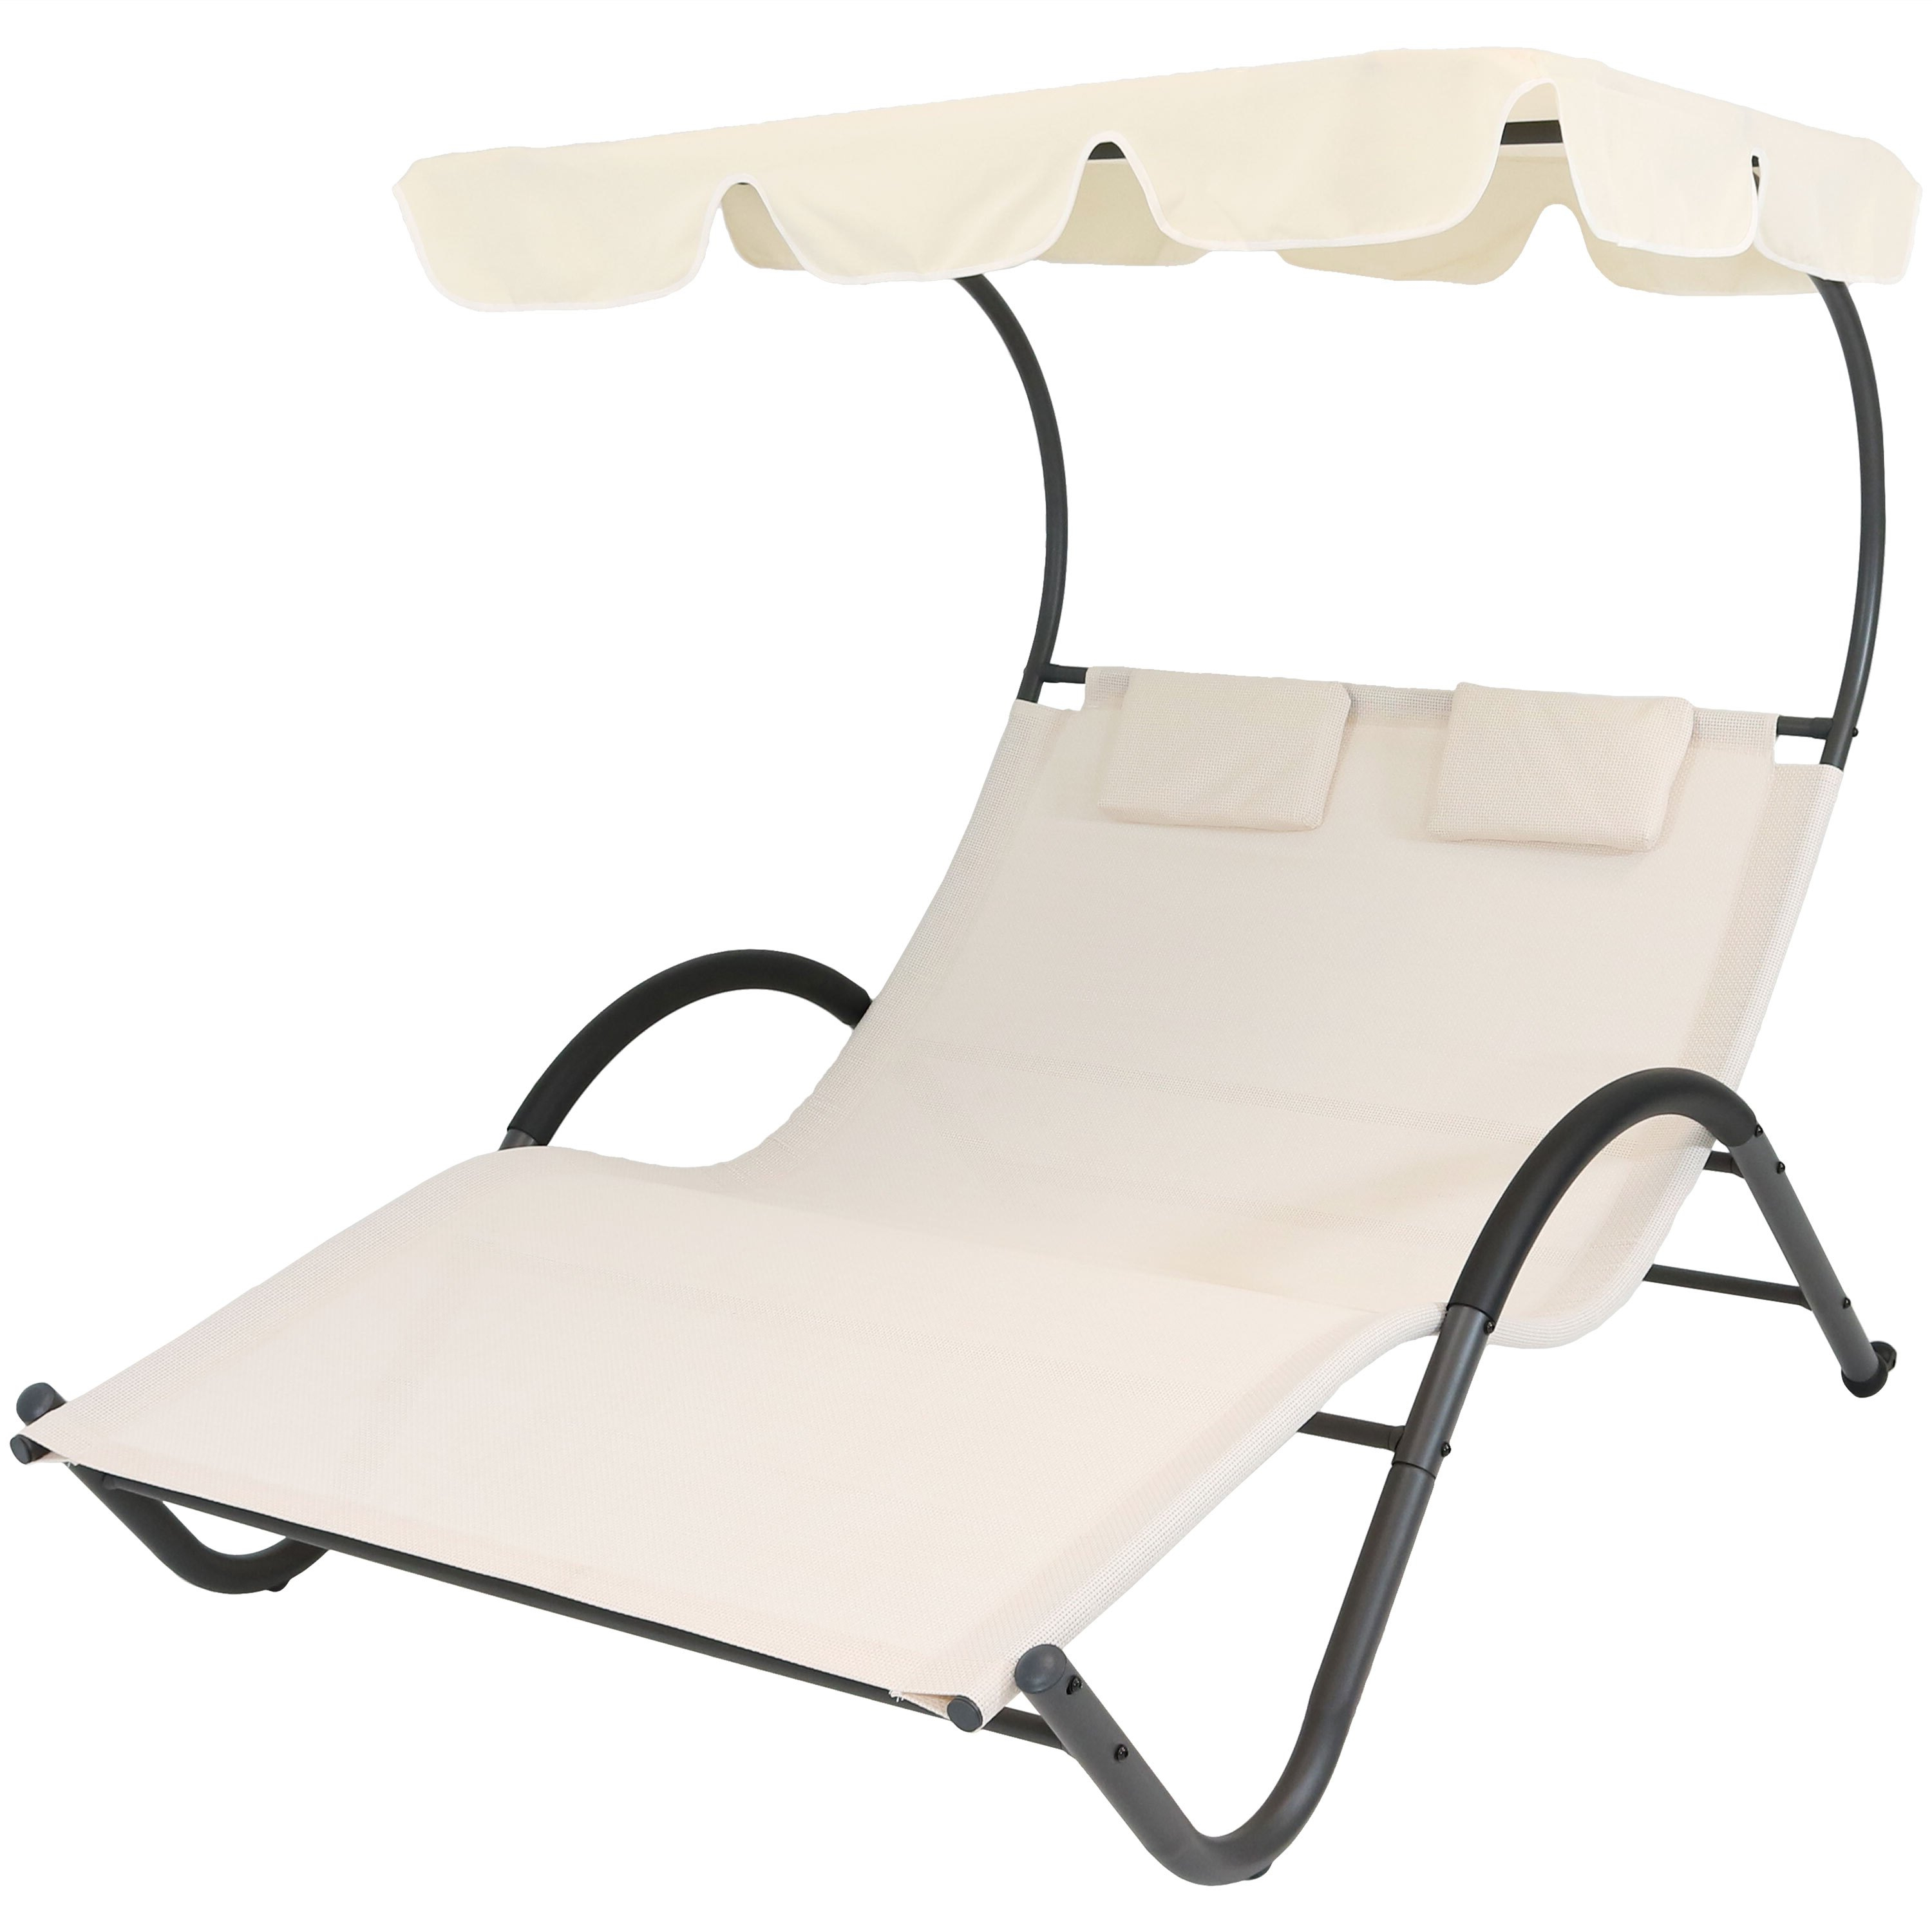 Chaise Lounge Chairs In Bronze With Mist Cushions Inside Latest Sunnydaze Outdoor Double Chaise Lounge With Canopy Shade And Headrest Pillows, Portable Patio Sun Lounger, Beige (View 25 of 25)